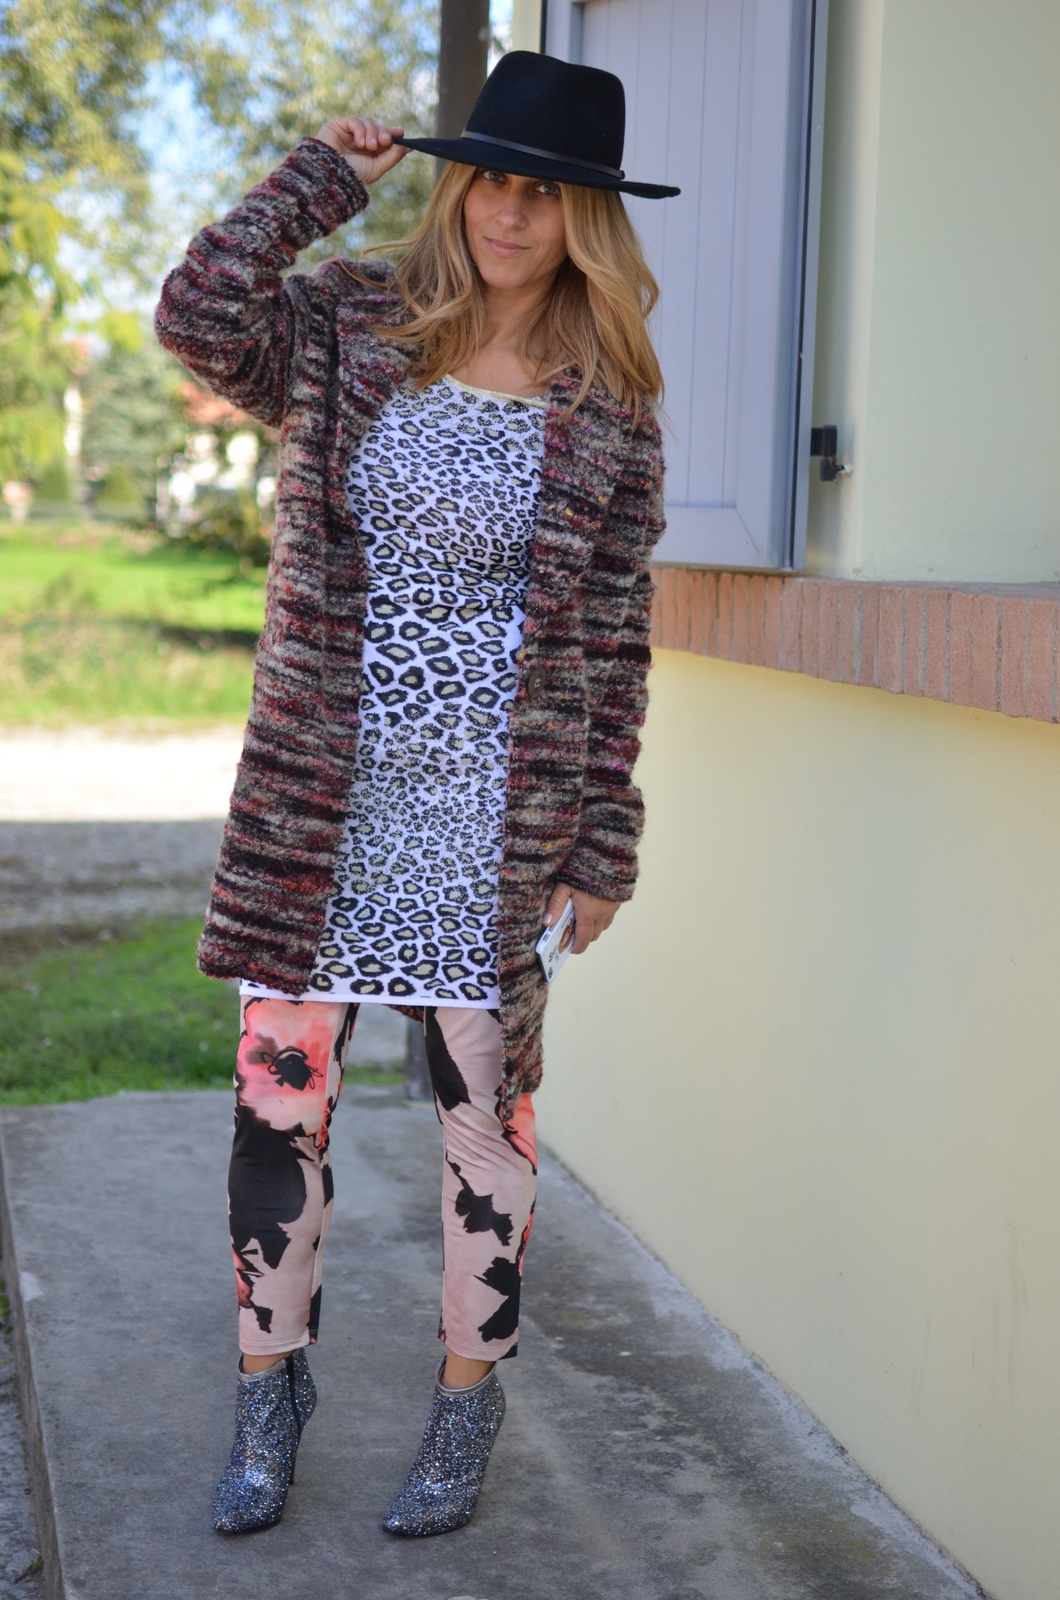 MINI COAT E FLOREAL LEGGINS (5)